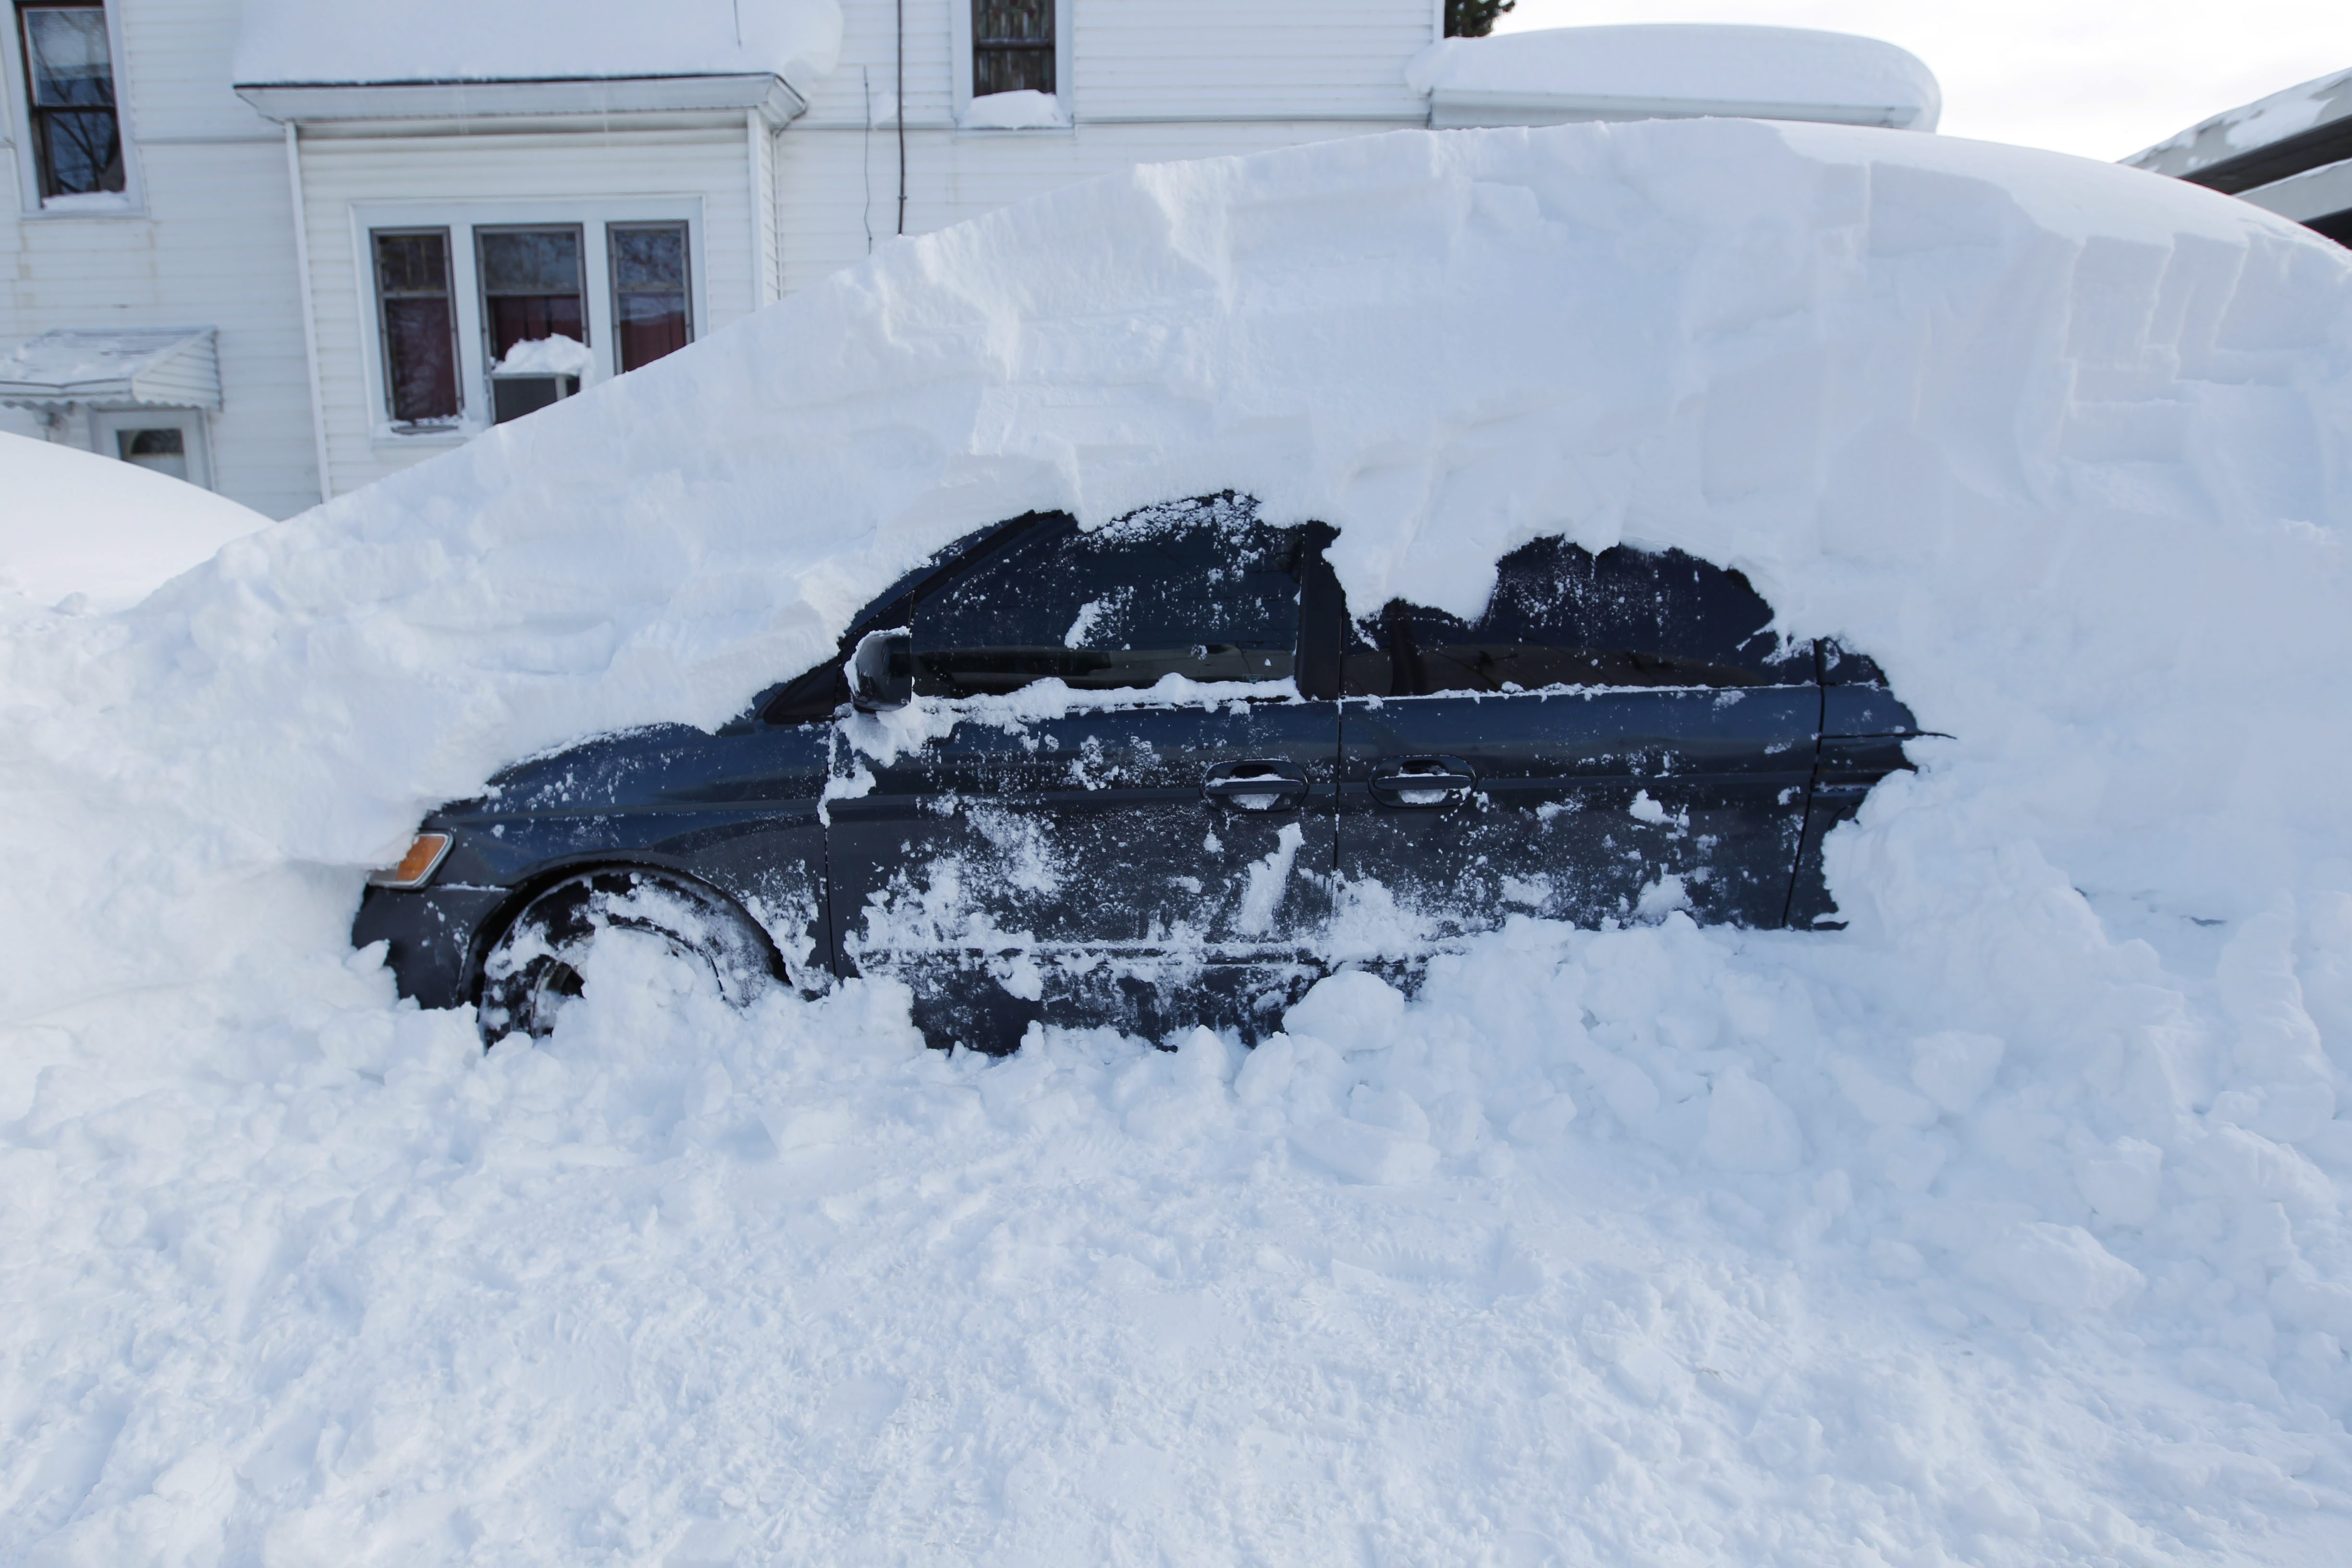 Quickly accumulating lake-effect snow left dozens cars, like this one on Meriden Street in South Buffalo, buried this week. In at least two cases, drivers lost their lives inside cars buried by the relentless waves of snow.